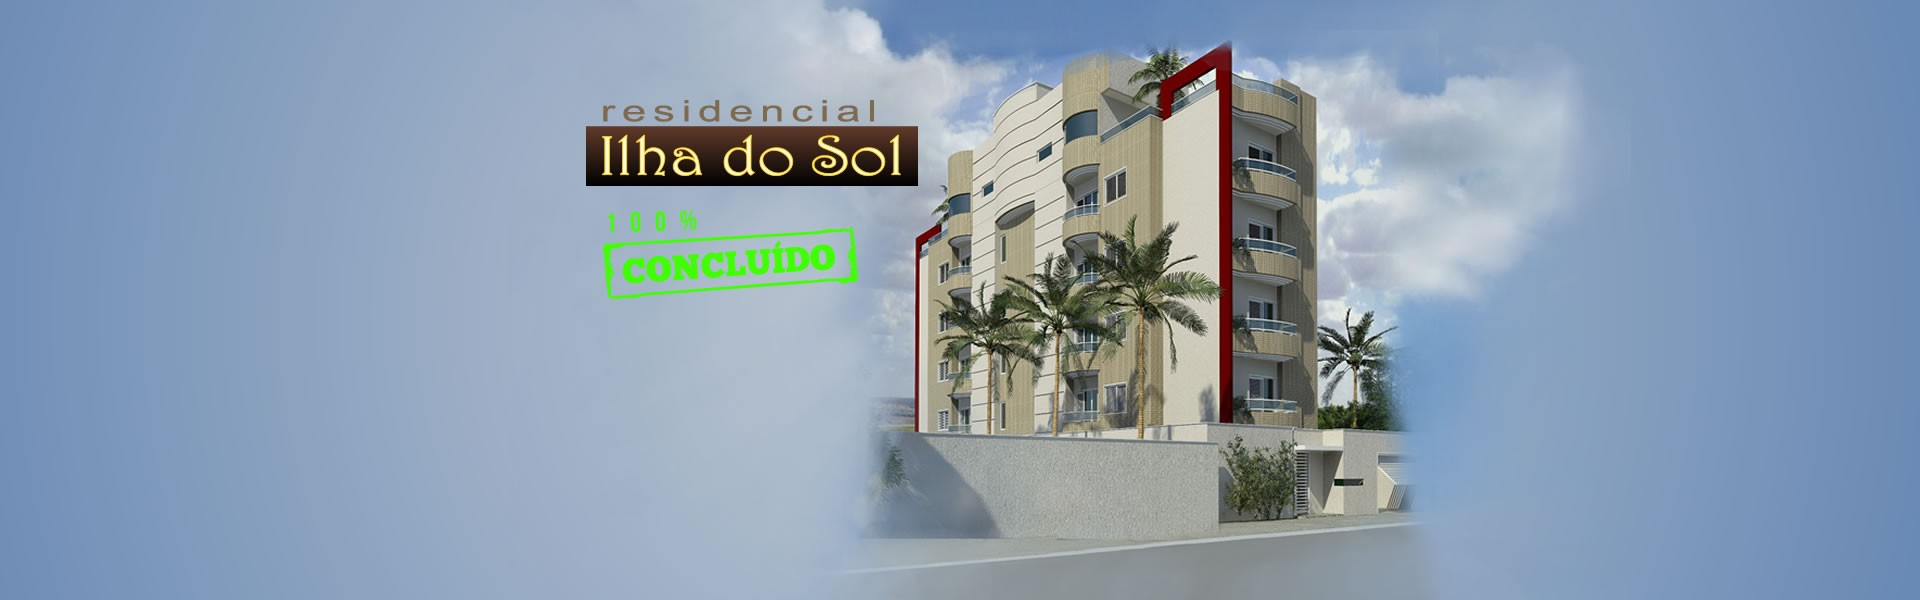 Residencial Ilha do Sol